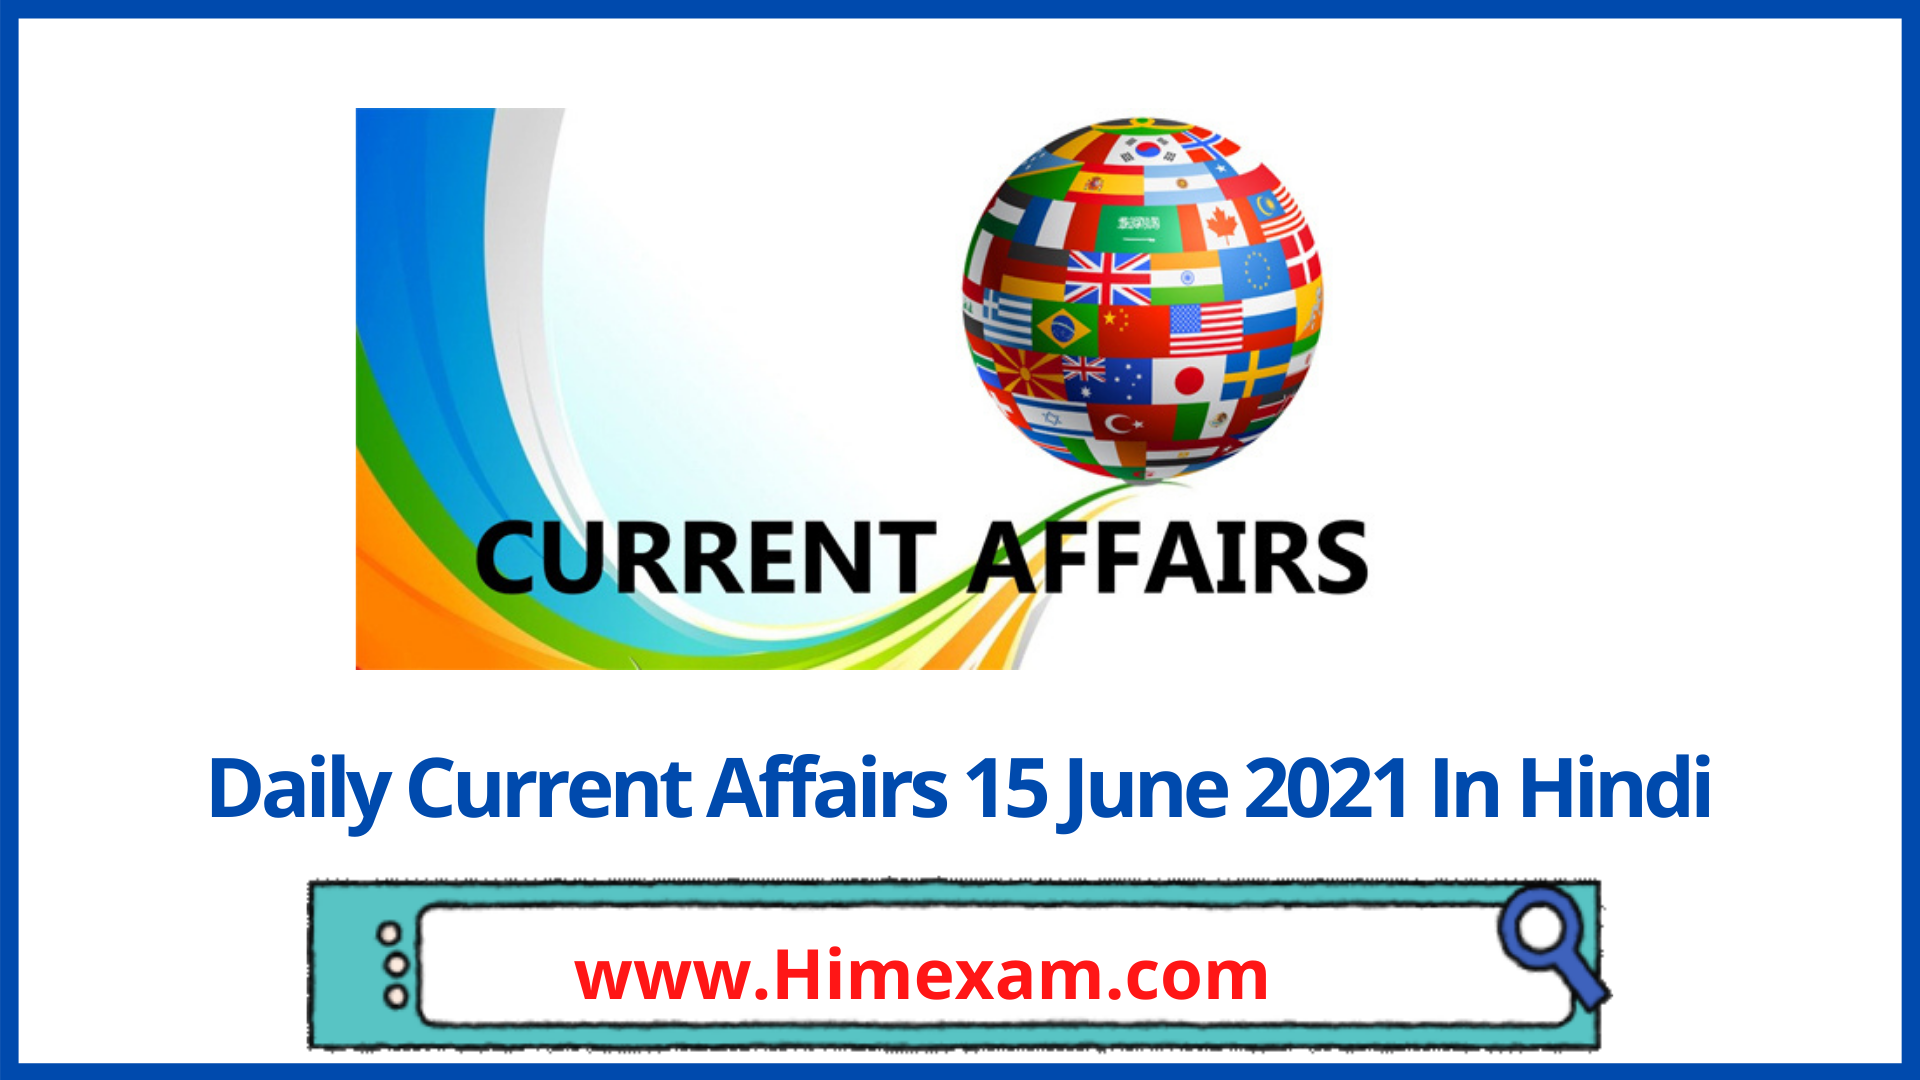 Daily Current Affairs 15 June 2021 In Hindi